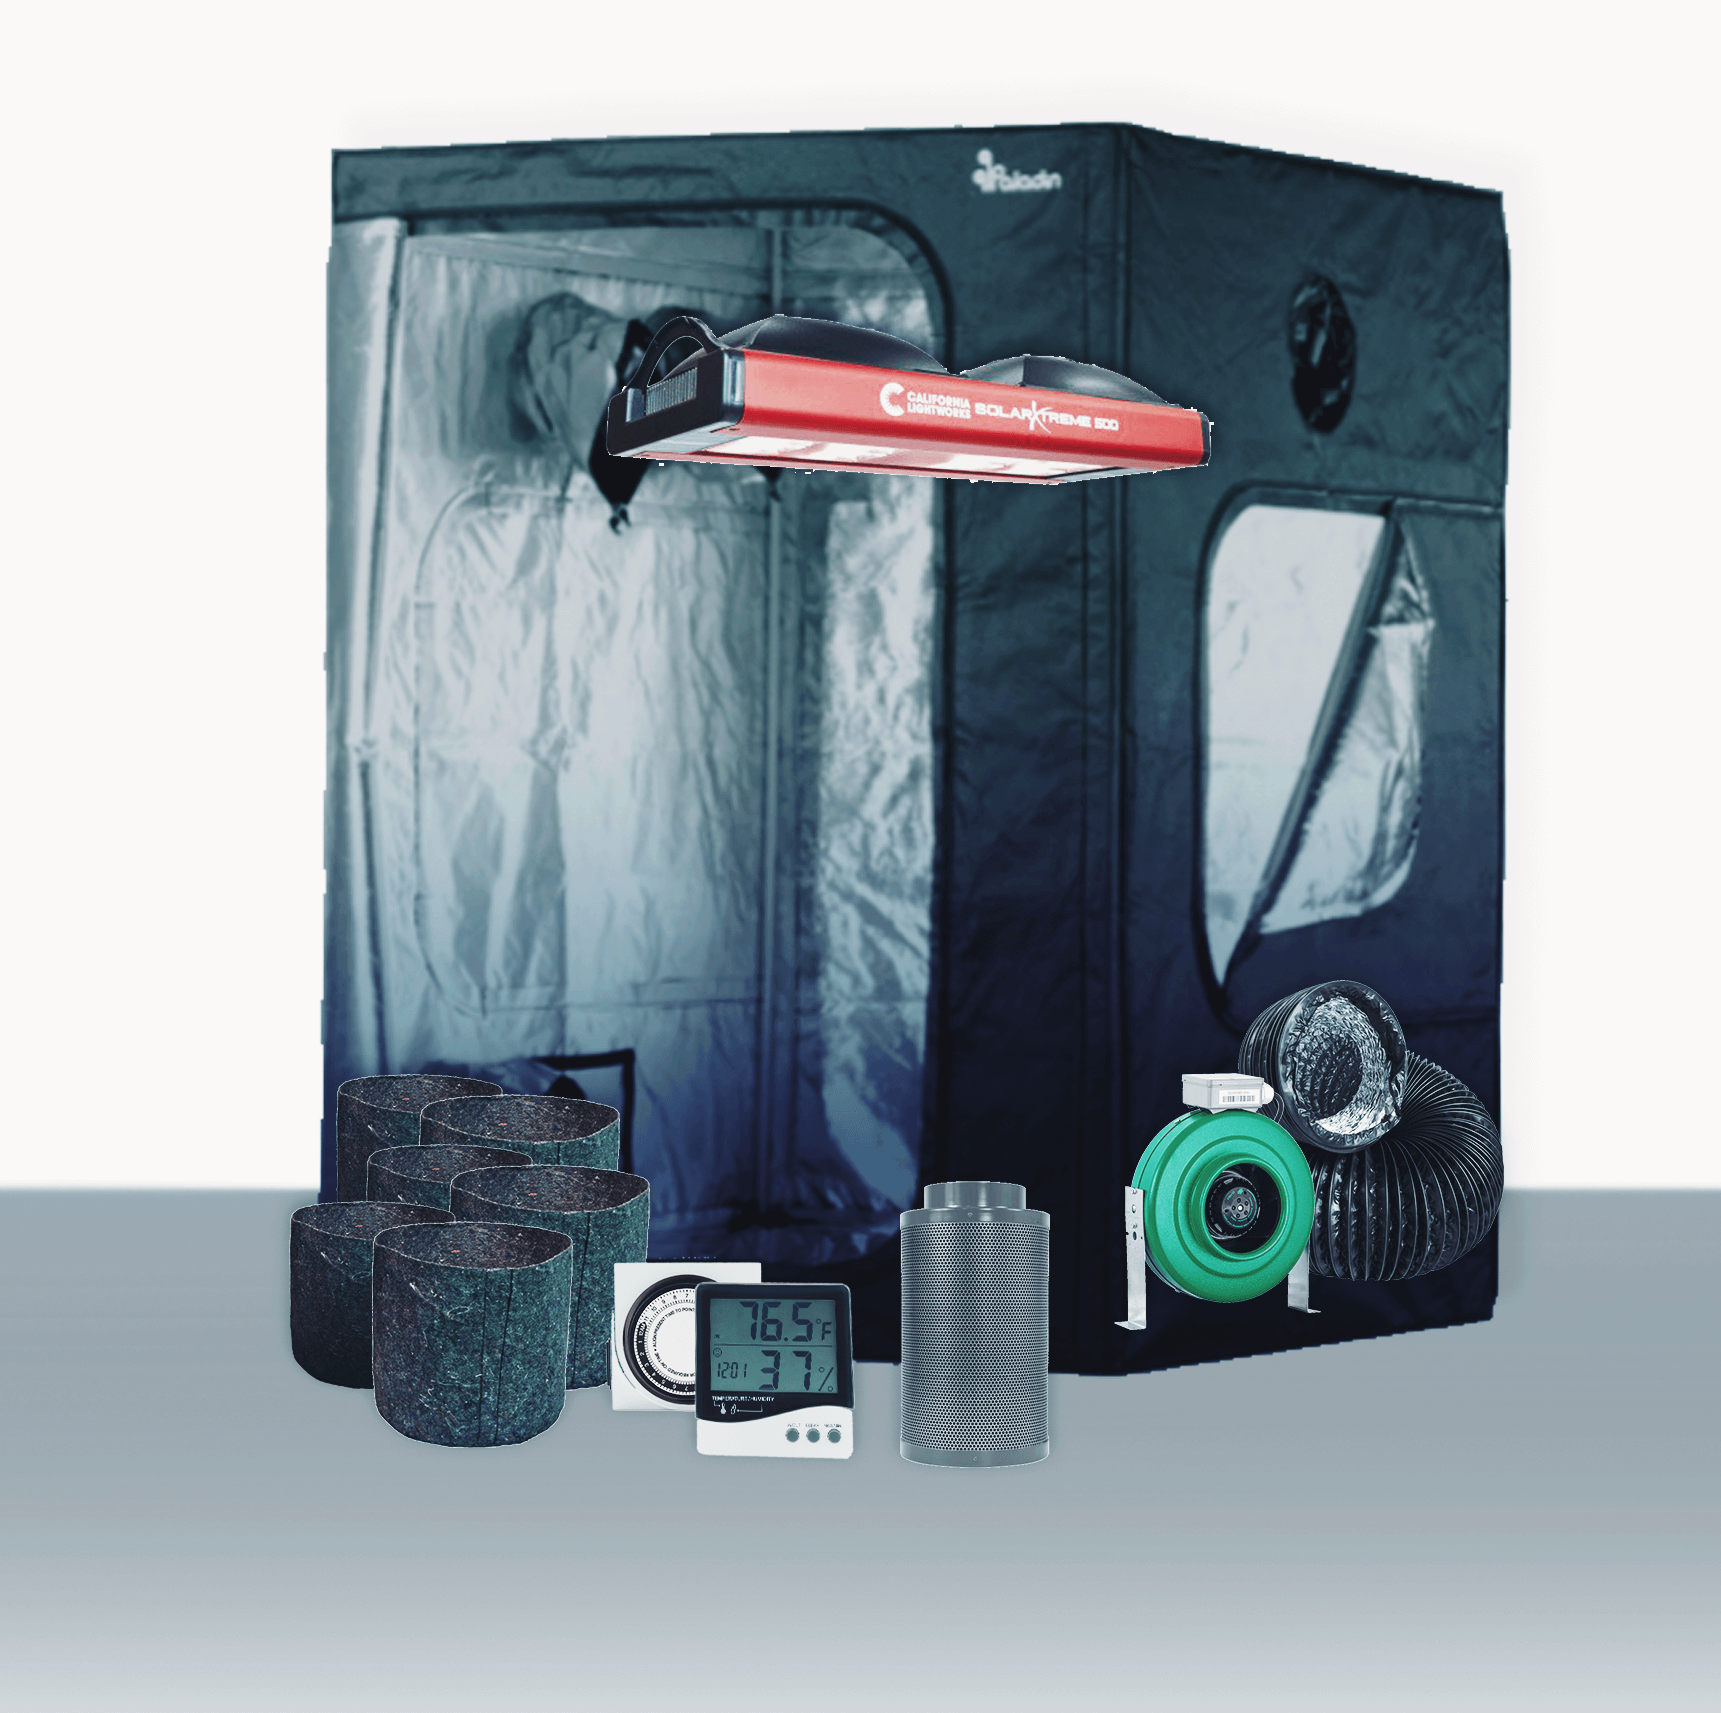 """5' x 5' Grow Room 400W CLW COB LED Soil Complete Grow Tent Package 5' x 5' Grow Room 400W CLW LED Soil Complete Grow Tent Package This complete grow room tent package includes everything that you need to get started with discretely growing at home. Experienced growers designed every aspect of this tent package. They chose the parts of this package to create the best grow experience at an affordable price. Included in this Grow Tent Kit: Plant House Indoor Grow Tent - 5' x 5' x 73  Growers House Carbon Filter 6  x 16  400 CFM Active Air 6 inch In-Line Fan 400 CFM 6 inch x 25' Black Lightproof Ducting w/Clamps Silver Flex Duct Tape -- 5 Yards 2 x Hurricane 6 inch Clip Fan - Classic Series California Light Works SolarXtreme 500 LED Grow Light Grow Crew 1/8 inch Ratchet Light Hanger (Pair) Titan Controls Apollo 8 -- 24 Hour Dual Timer Grower's Edge Large Display Thermometer & Hygrometer 16 x Growers House Essentials Round Fabric Charcoal Pot - 3 Gallon 16 x Gro Pro Heavy Duty Black Saucer - 12 in Grower's Edge Soft Mesh Trellis Netting 5 ft x 15 ft w/ 6 in Squares General Hydroponics pH Control Kit Plant House Indoor Grow Tent - 5' x 5' x 73  The Plant House Indoor Grow Tent gives you total control over your grow space. The Plant House tent is built with a reinforced full metal frame and thick, durable sheathing fabric. The sturdy Plant House Indoor Grow Tent features crossbars to give growers the option of hanging lighting and ventilation systems from the ceiling (maximum load capacity of 110 lbs), opening up the entire 25 square ft of grow space for their crop. Despite its large size, the Plant House Indoor Grow Tent - 5' x 5' x 73"""" does not have a central vertical pole, allowing a single light source to be used. All lighting types including HPS, MH, CMH, fluorescent, LED, and more work in the Plant House Indoor Grow Tent - 5' x 5' x 73"""". Compare to Secret Jardin Dark Room tents, yet with upgraded metal corners. Accessing your crop and managing airflow is easy with th"""